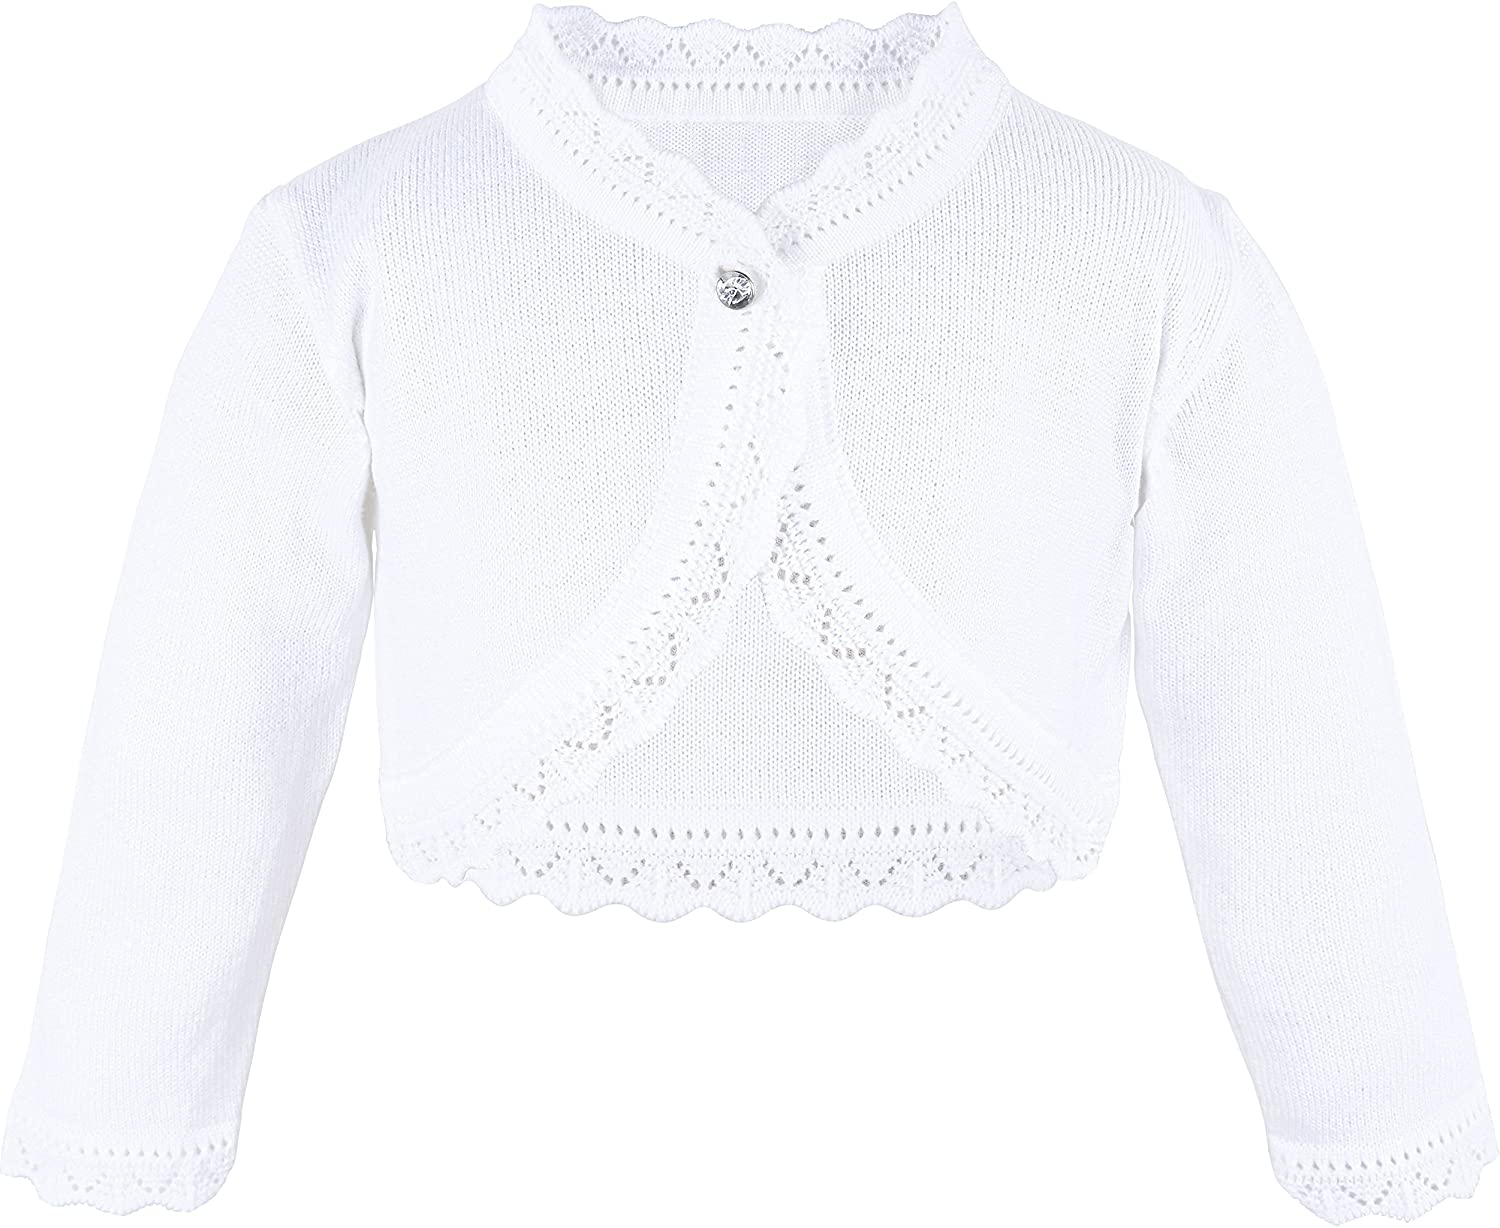 Lilax Little Girls Knit Long Sleeve Button Closure Bolero Cardigan Shrug